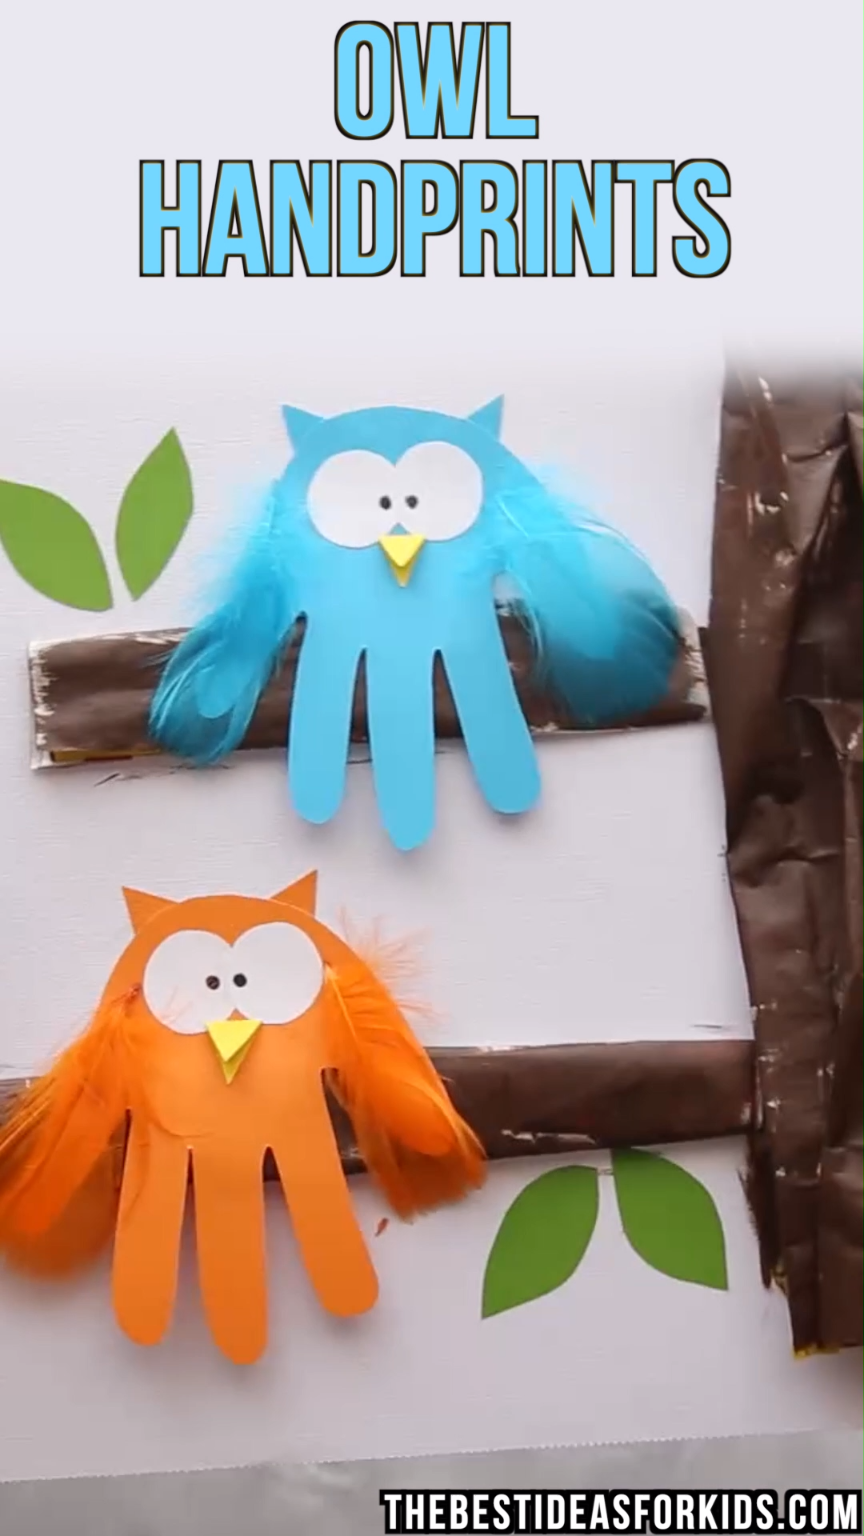 Owl Handprint - The Best Ideas for Kids